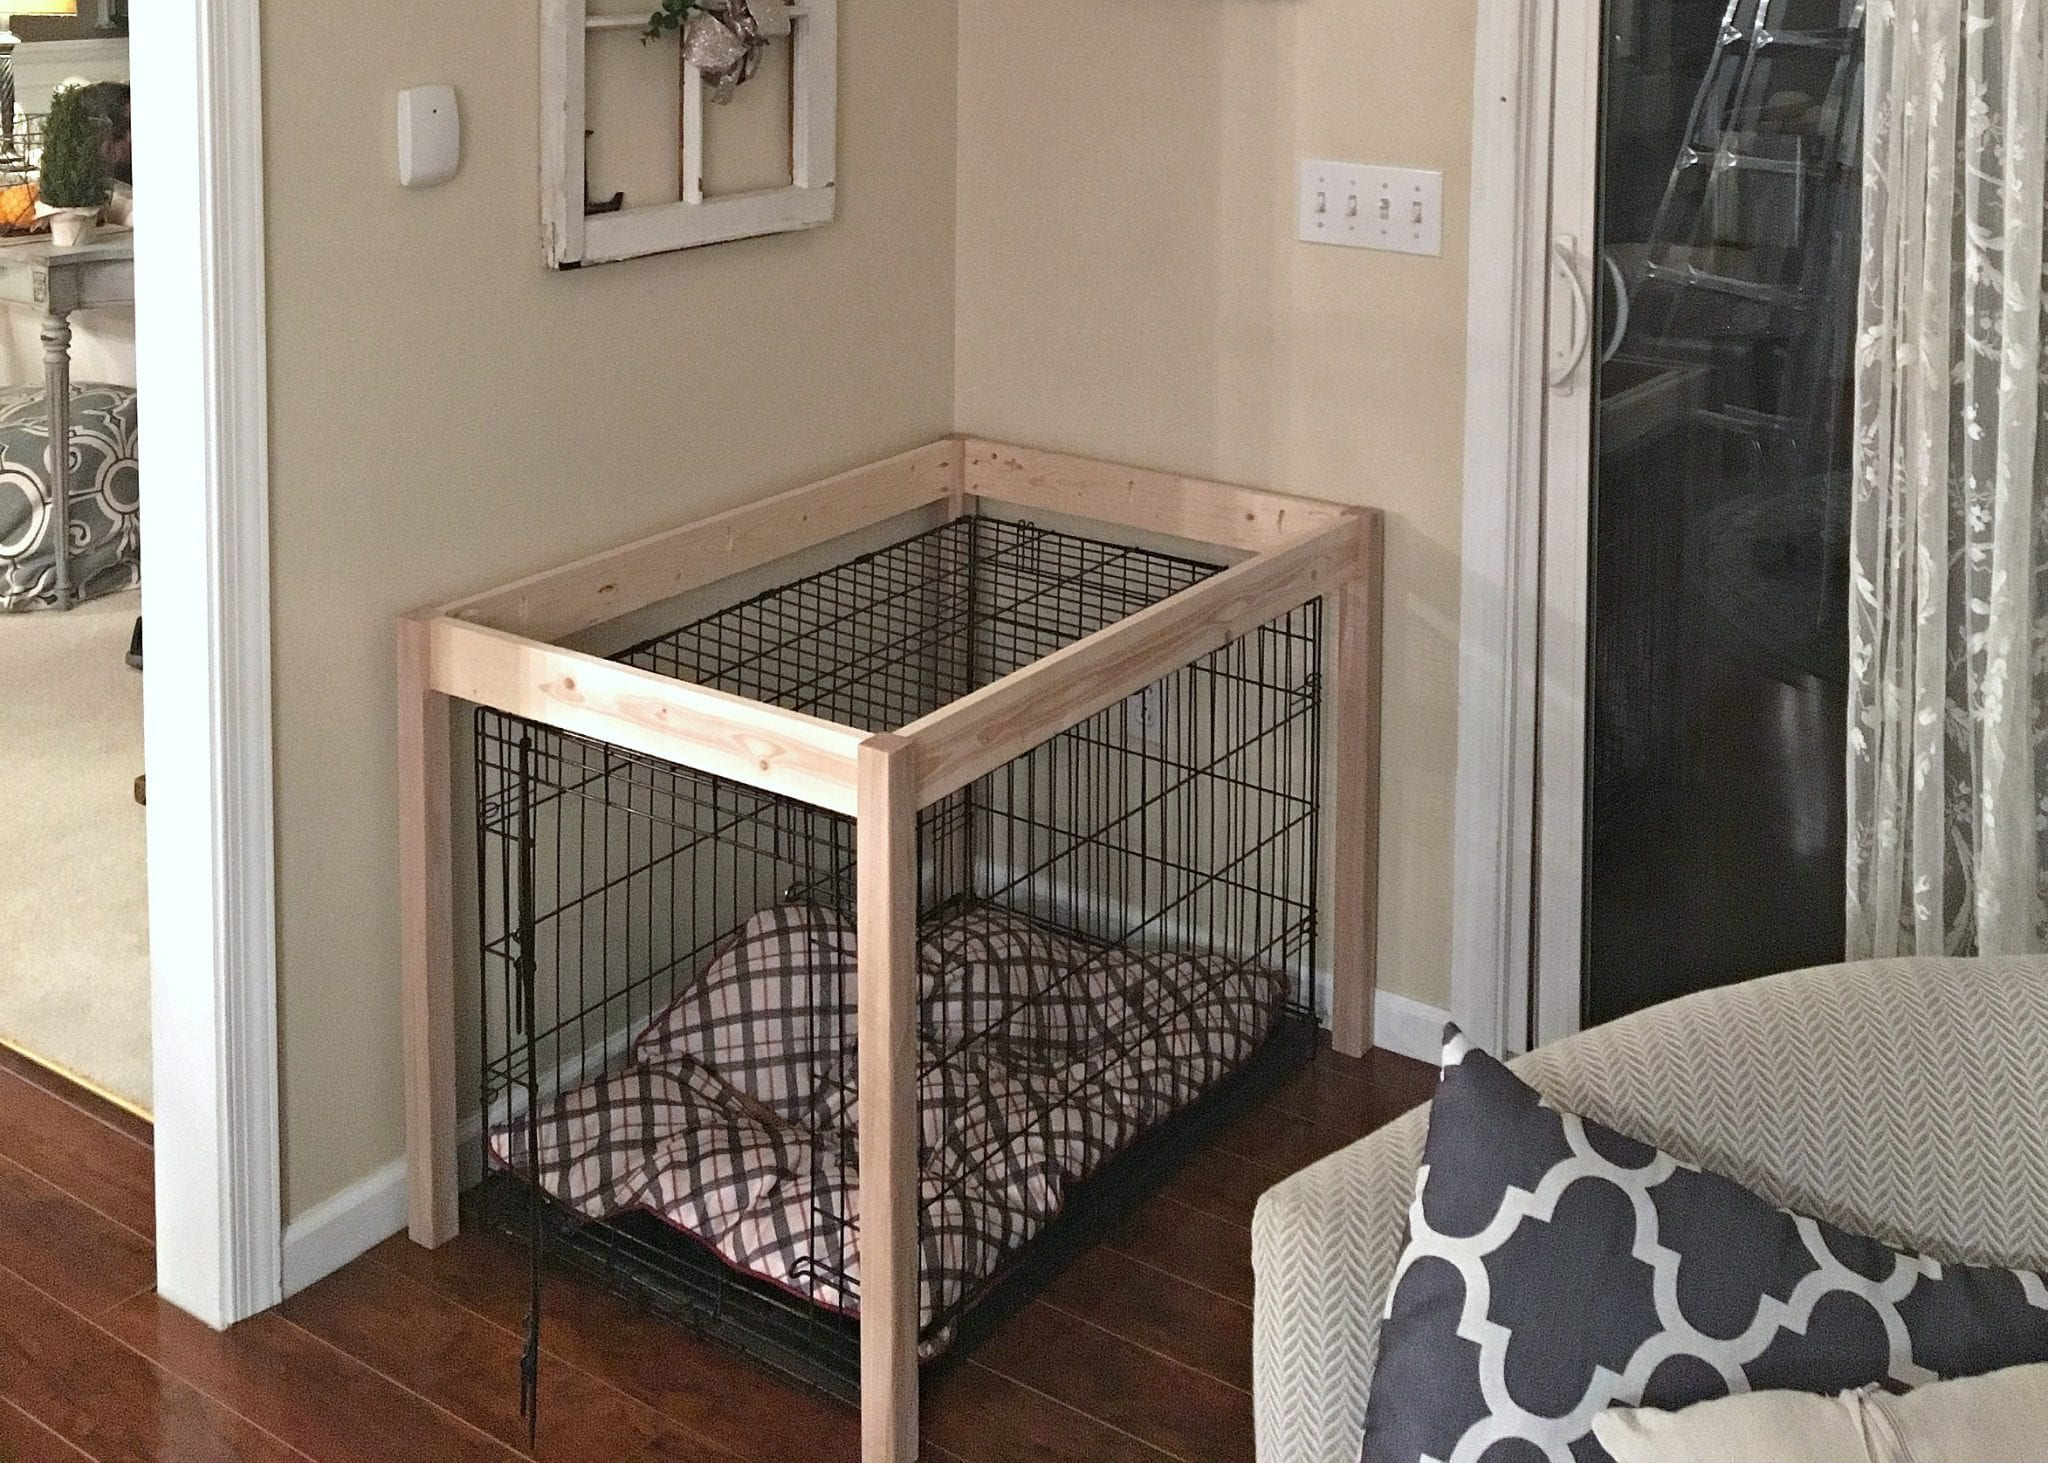 diy dog crate hack build snazzylittlethings end table bedroom furniture okc floral lamp sauder harbor rustic patio coffee ethan allen heirloom collection lauren ashley quilts